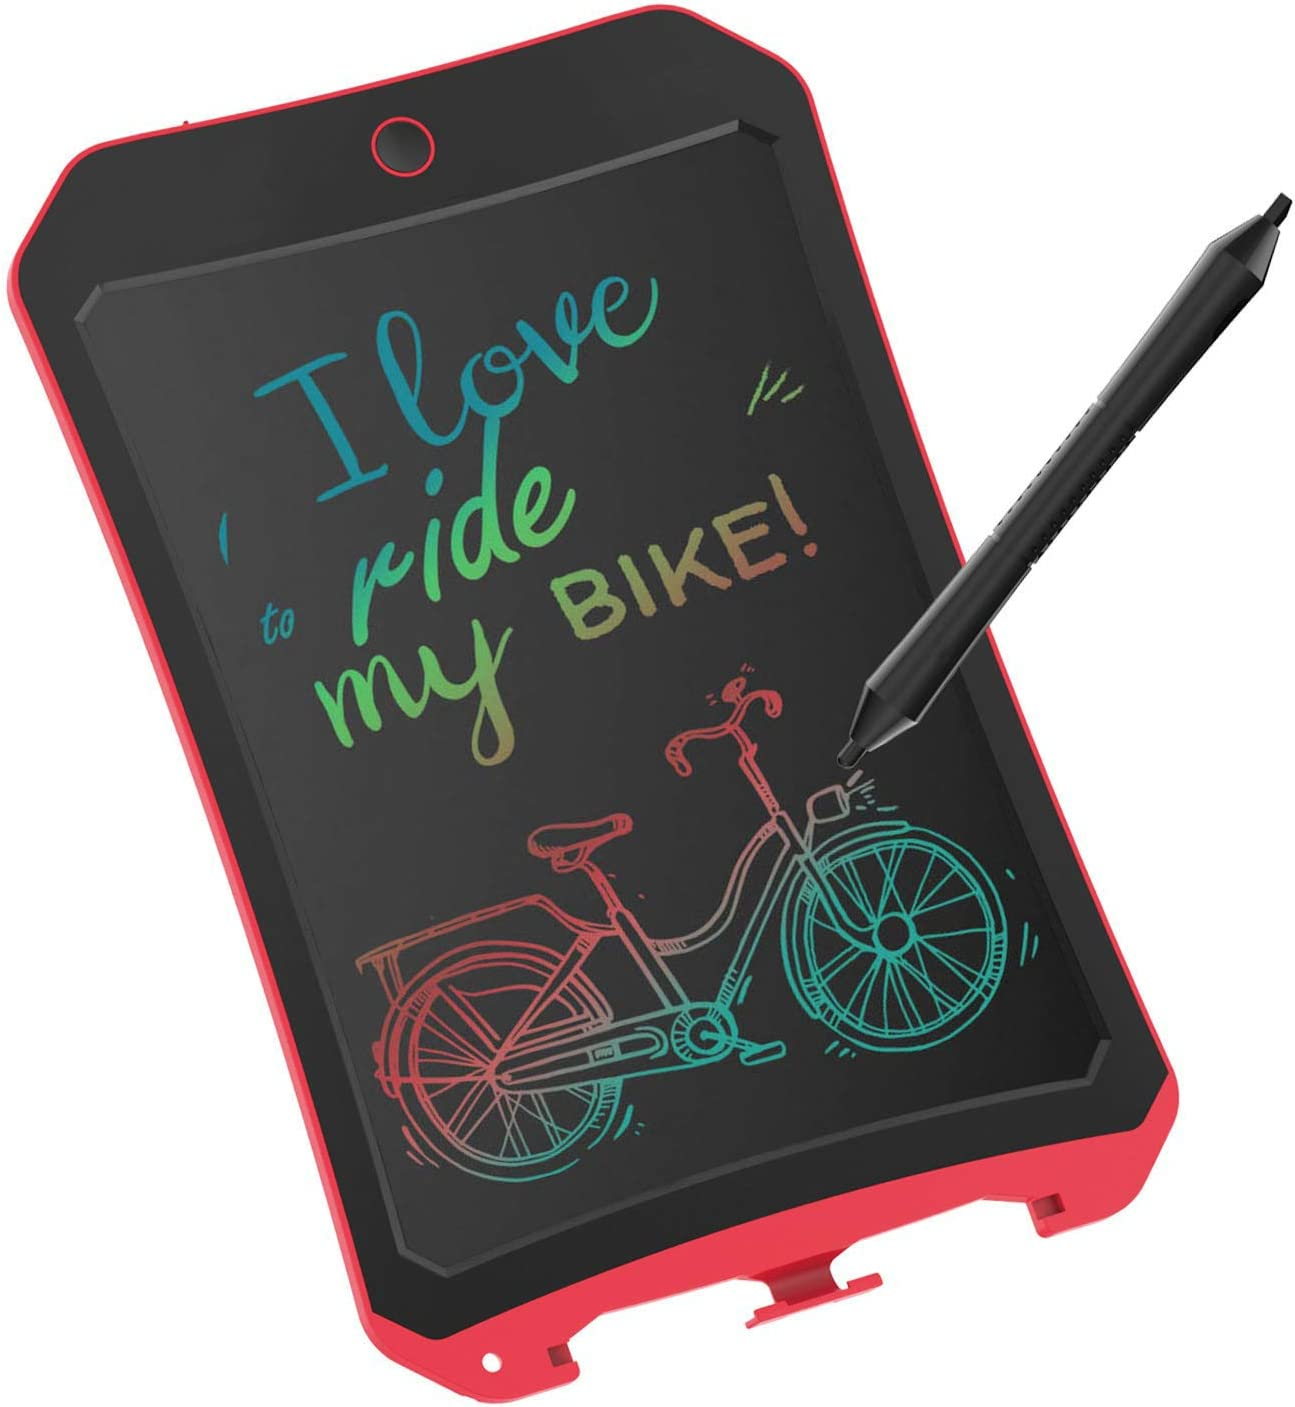 VNVDFLM LCD Writing Tablet for Birthday Gift,Kids Toy 8.5 inch Colorful LCD Writing Tablet Electronic Writings Pads Drawing Board Gifts for Kids Office Blackboard - Erase Button Lock Included(Red)